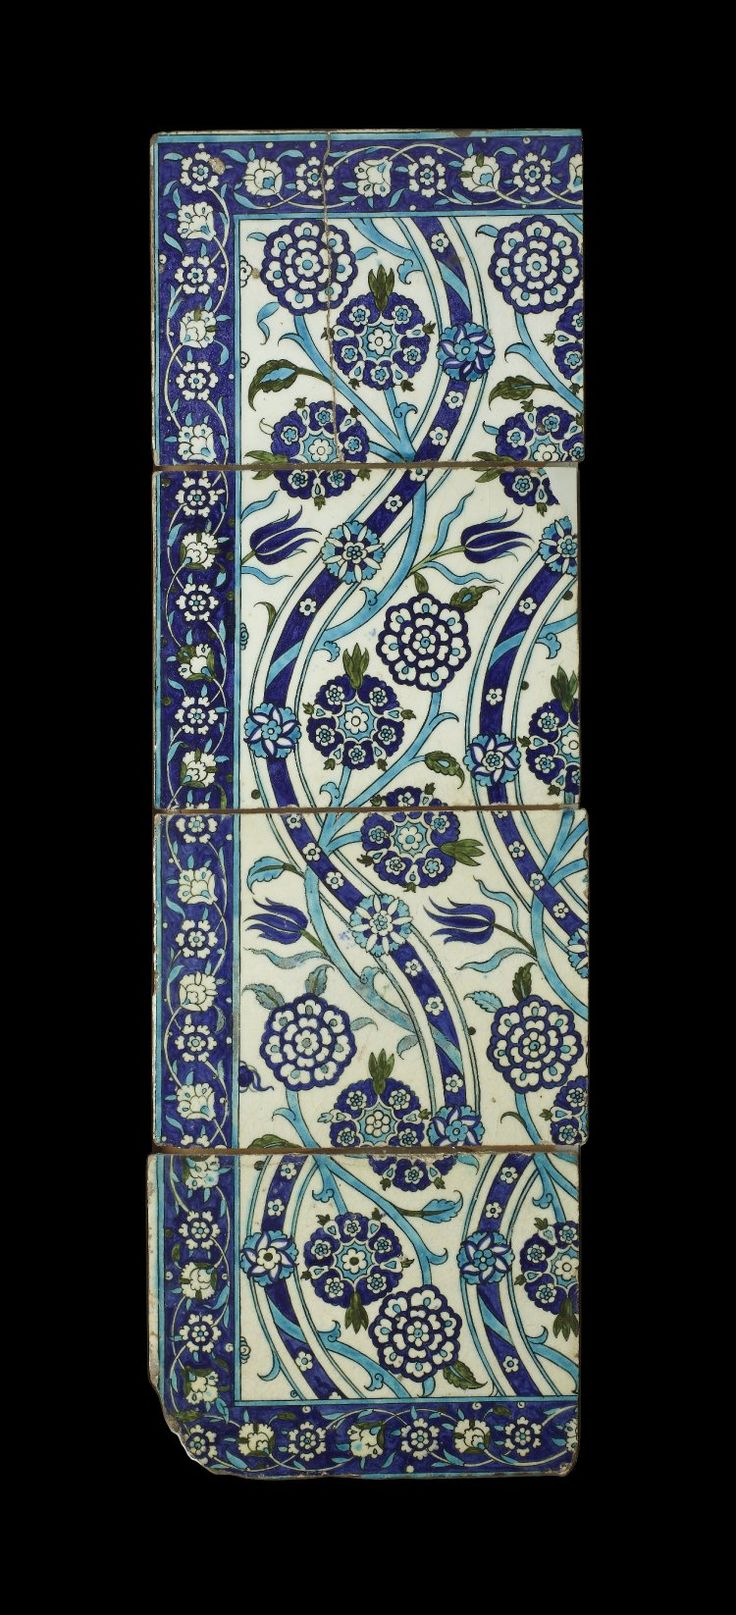 Tile (from panel). Parallel undulating stems, prunus blossoms or larger composite flowers, leafy tufts or three-pronged tulips, scrolls. Made of black, turquoise, cobalt, green painted and glazed and bevelled and stencilled ceramic, pottery.tile; Ottoman dynasty; 16thC; Iznik